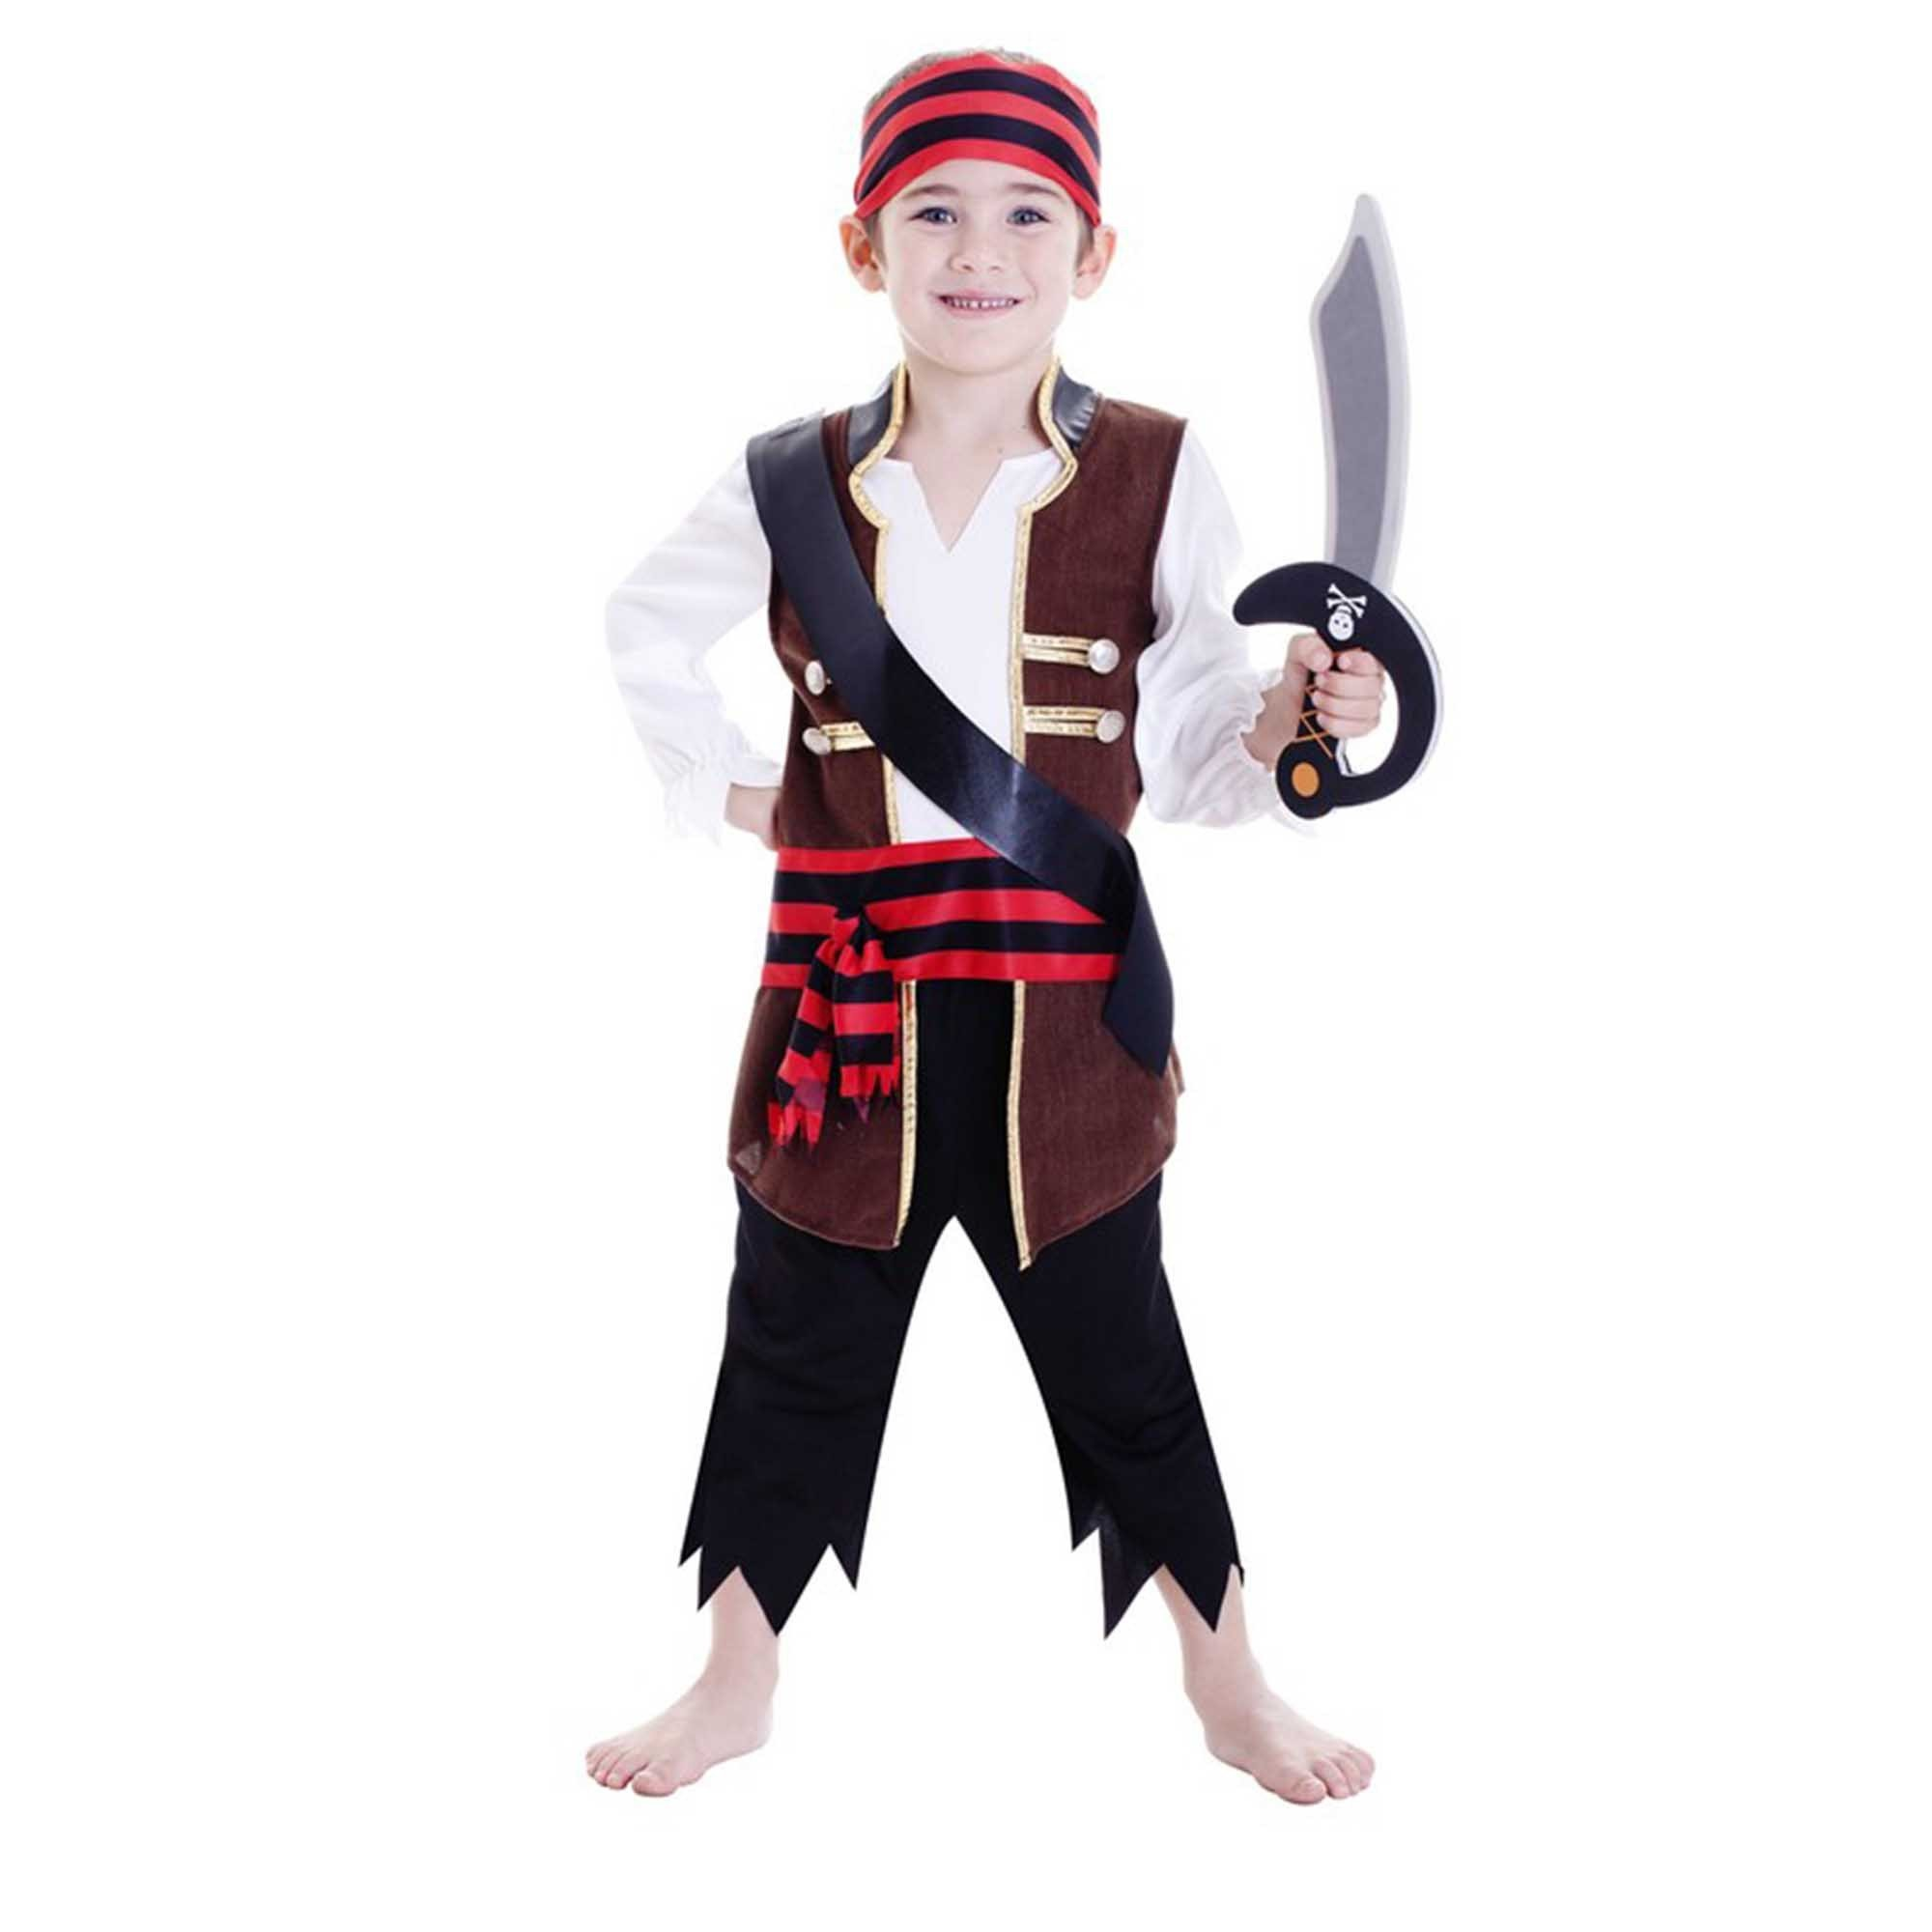 Deluxe Pirate Boy Costume (Large) 6-8 yrs